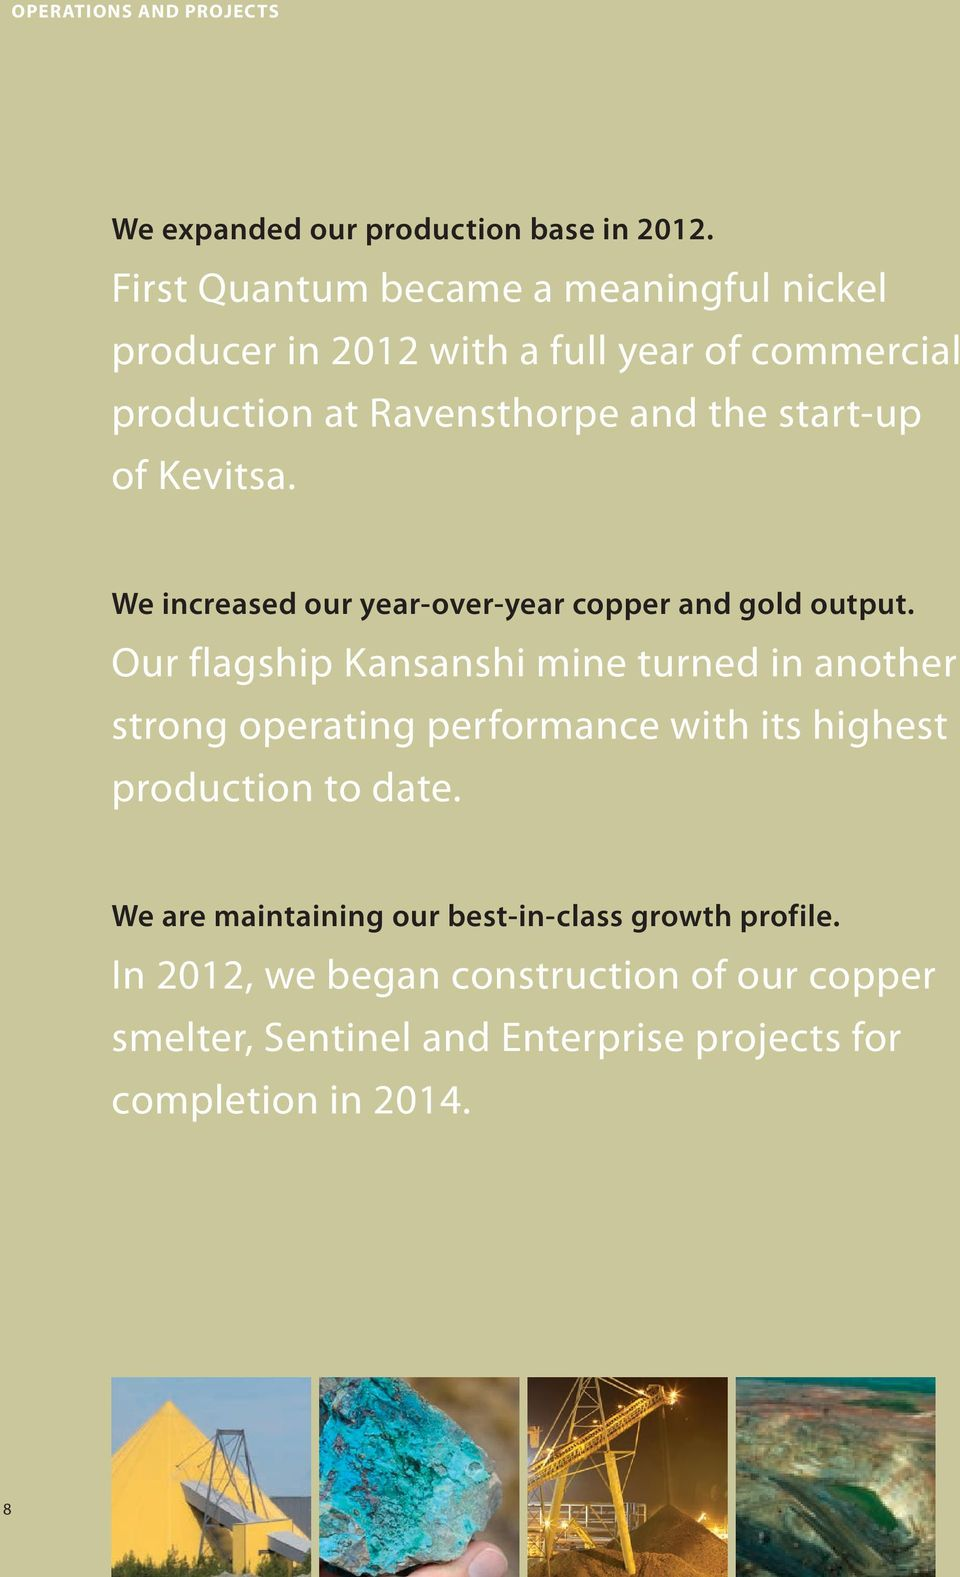 Kevitsa. We increased our year-over-year copper and gold output.